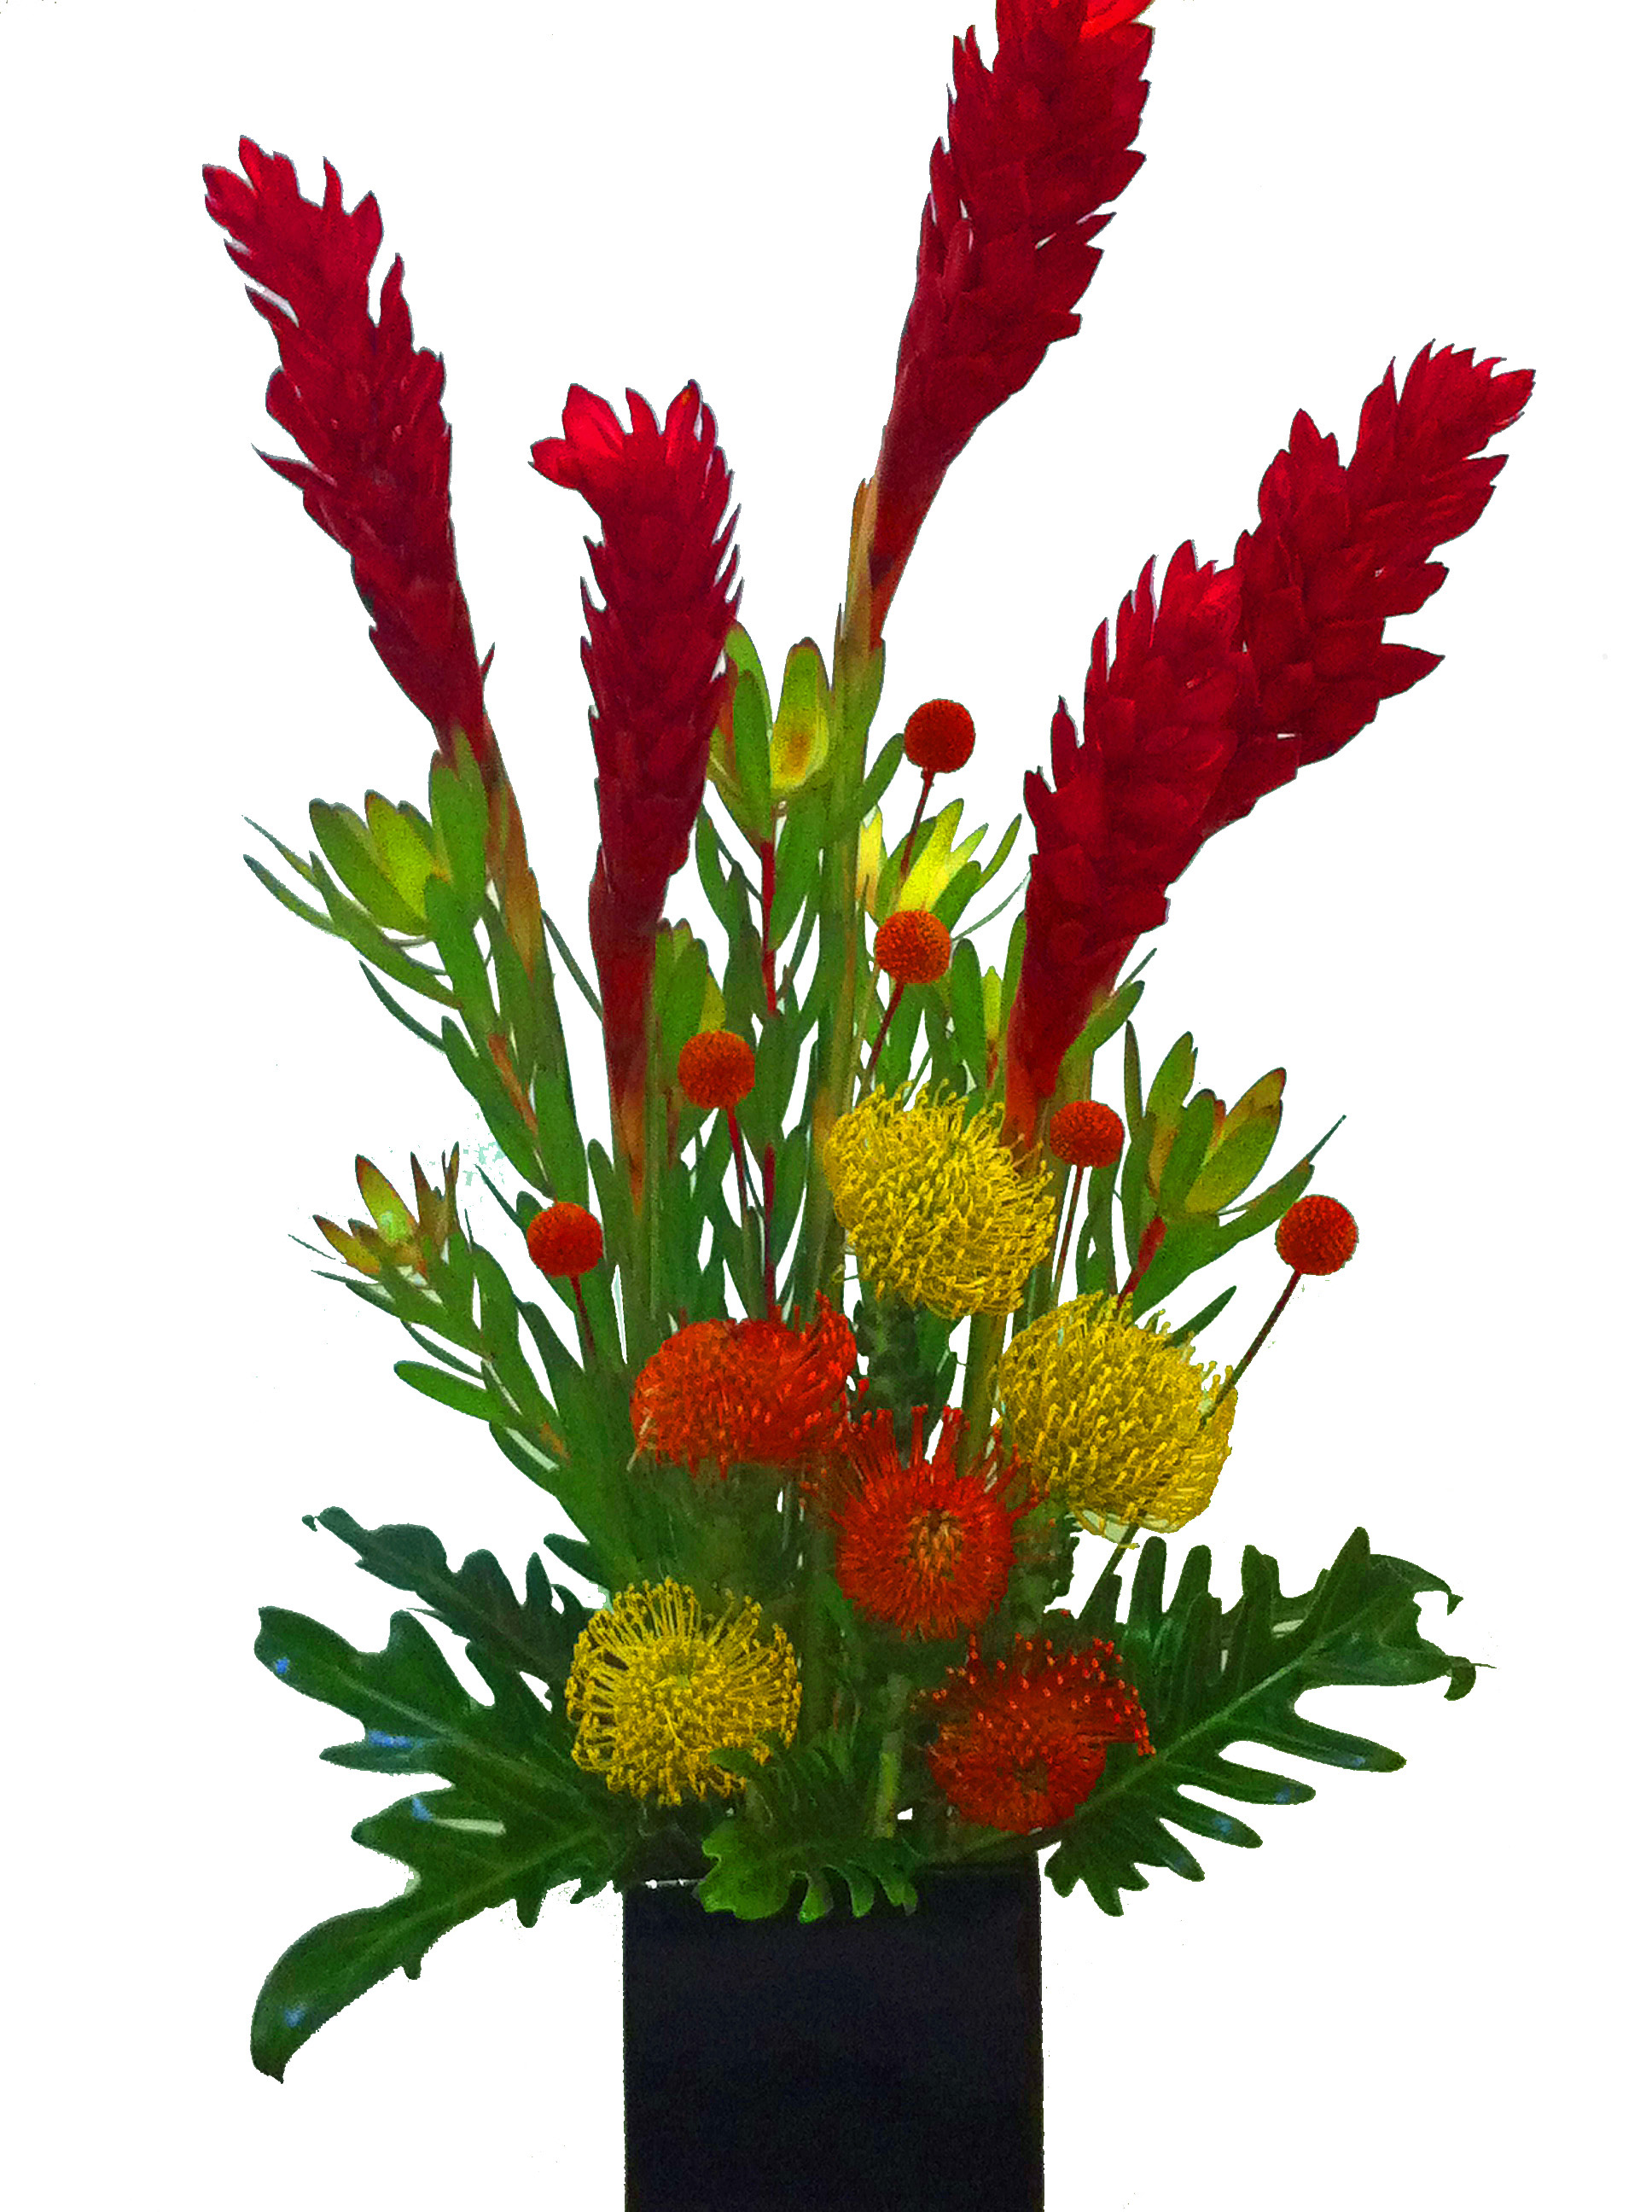 Chicago Weekly Flower Arrangement 4 | Khloros Plants